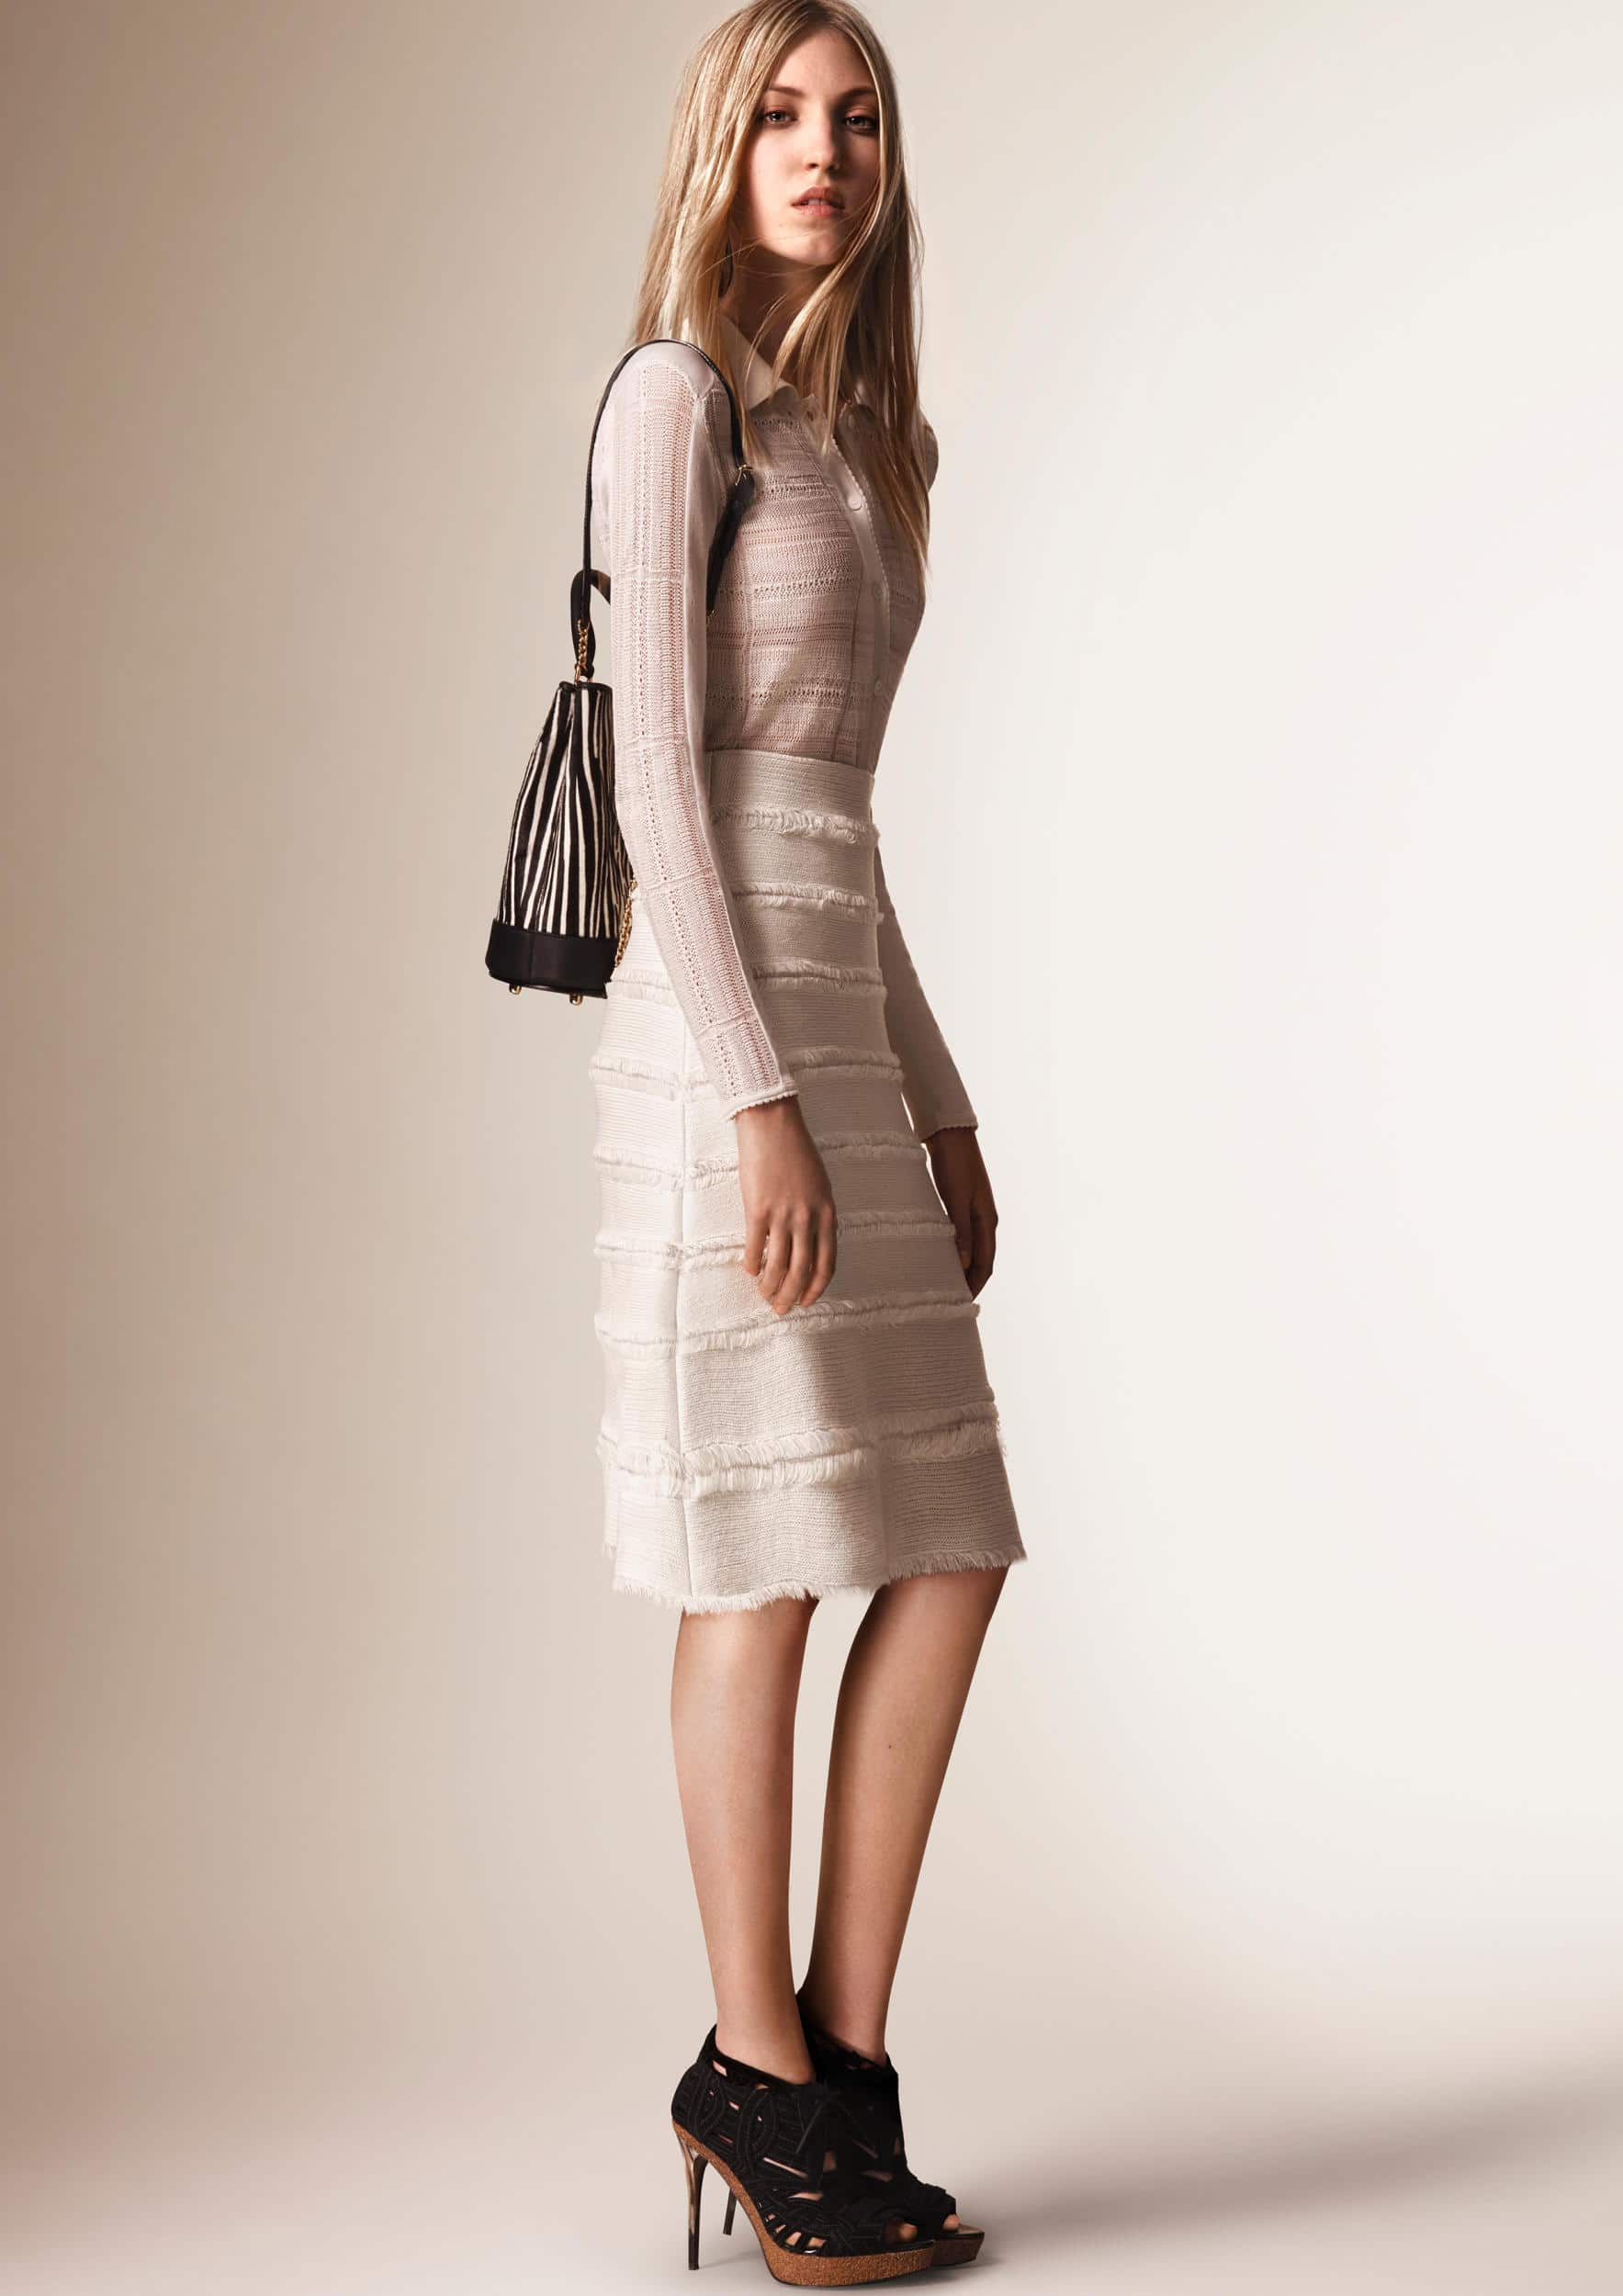 burberry-resort-collection-2016-7